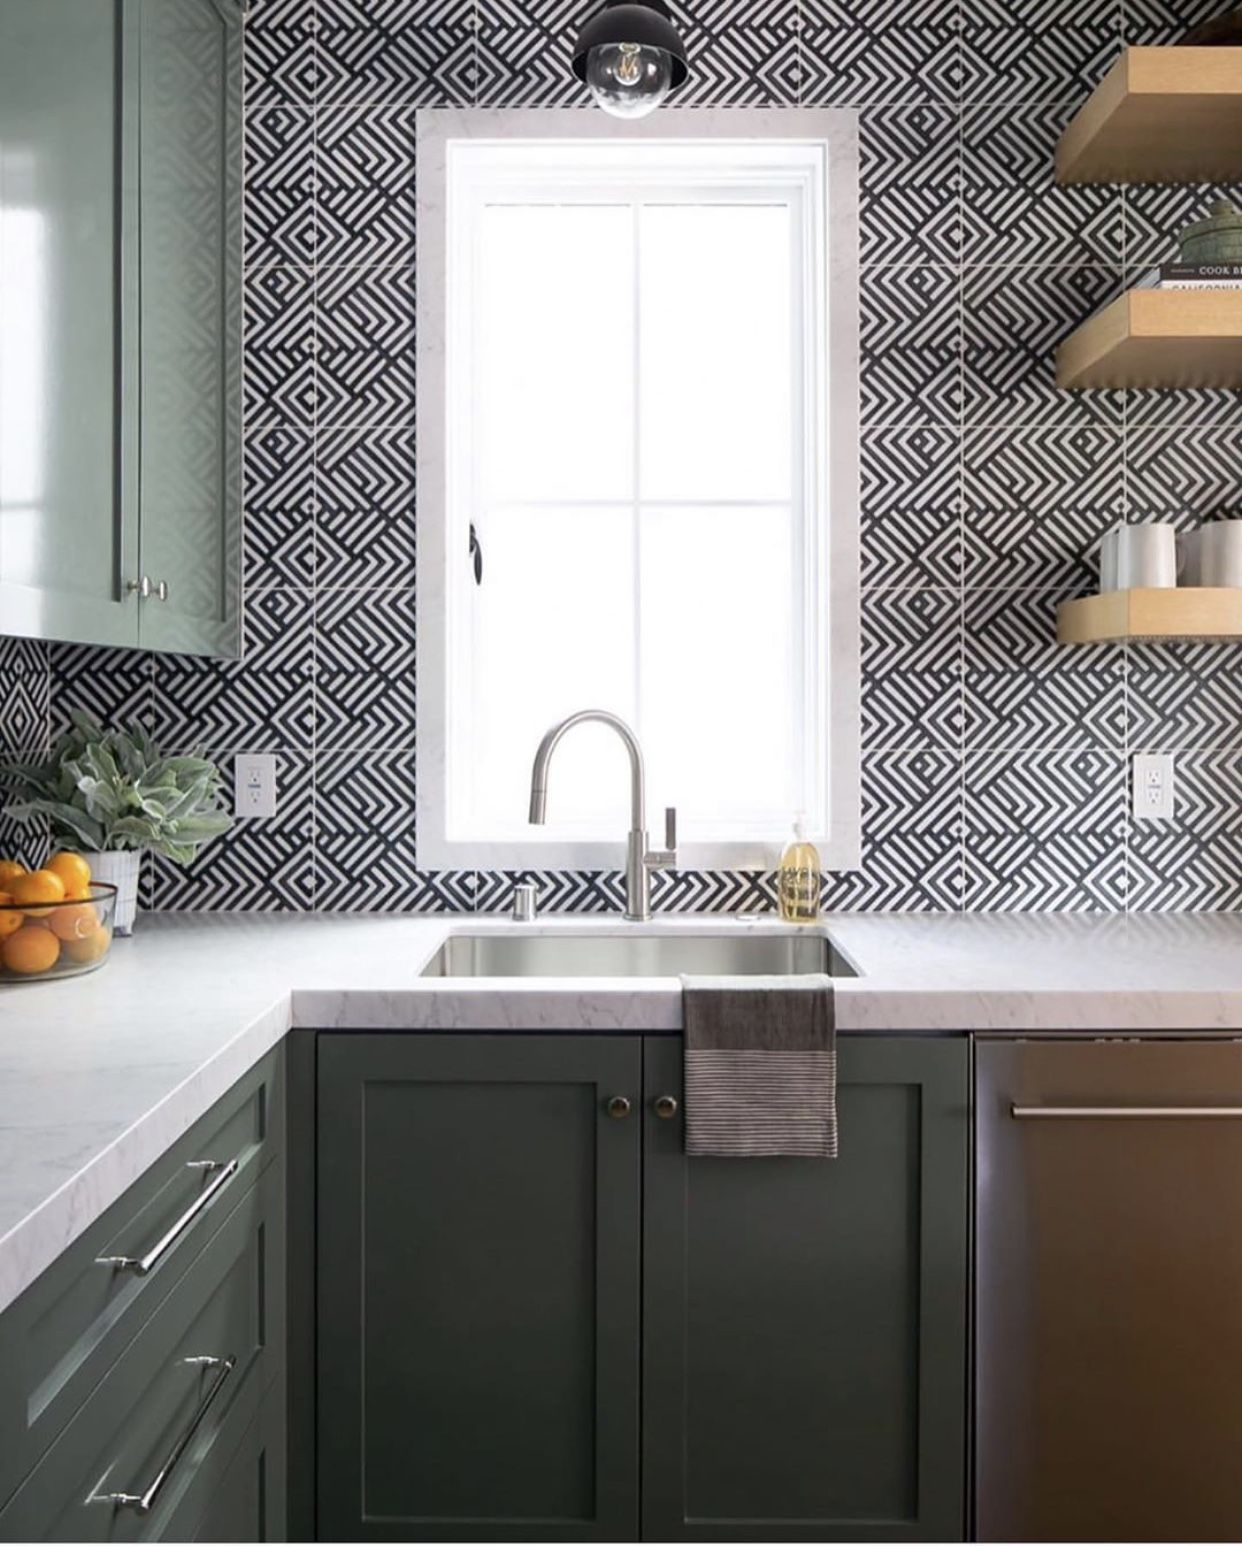 6 Design Predictions For 2020 Stoneimpressions In 2020 Kitchen Wall Tiles Design Modern Grey Kitchen Kitchen Wall Tiles Modern